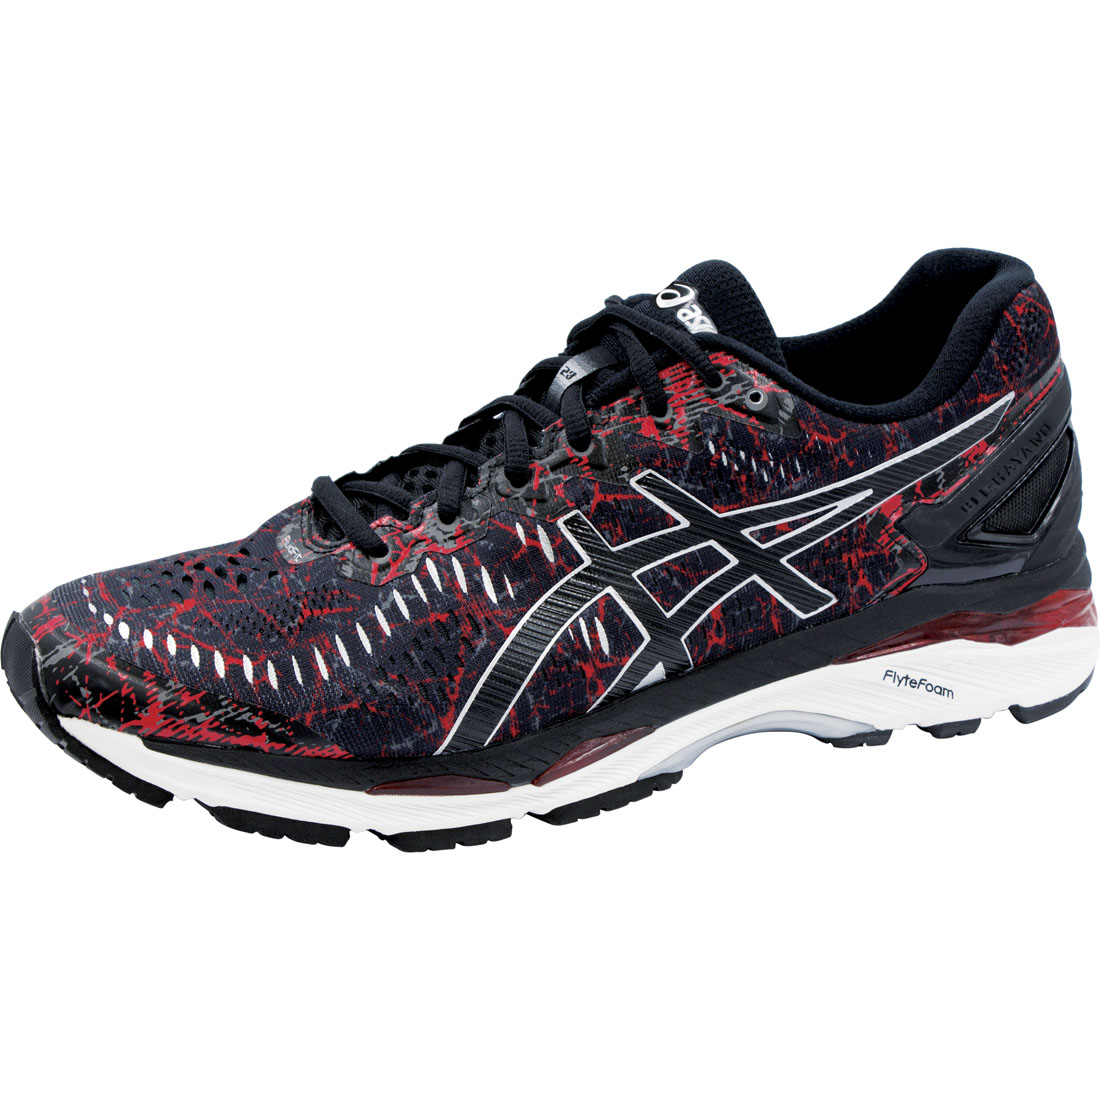 Asics Men's Kayano Premium Athletic Shoe-